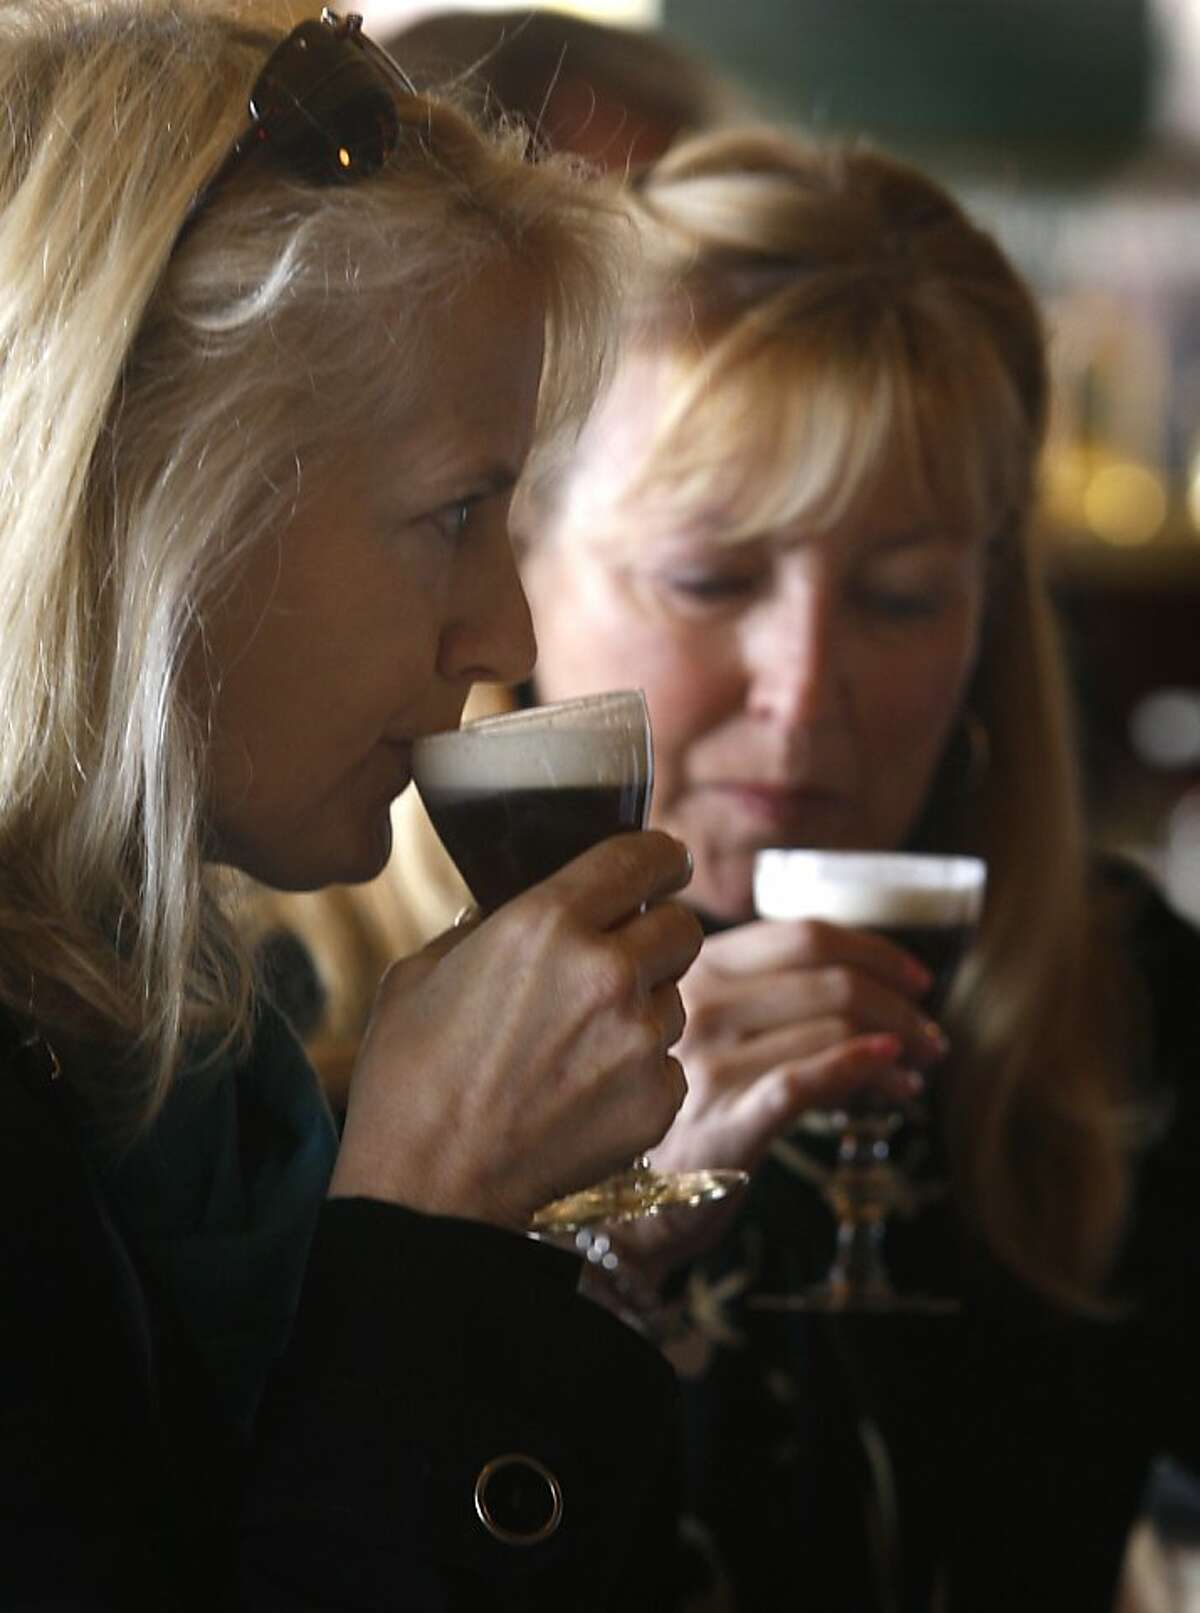 Leslie Cardenas (left) and Tina Murchison savor Irish coffee drinks at the Buena Vista Cafe in San Francisco, Calif. on Saturday, April 2, 2011. The venerable watering hole cornered the market on the original glasses when the manufacturer decided to stop making them. They now have a manufacturer in China but, according to management, aren't quite the same quality.